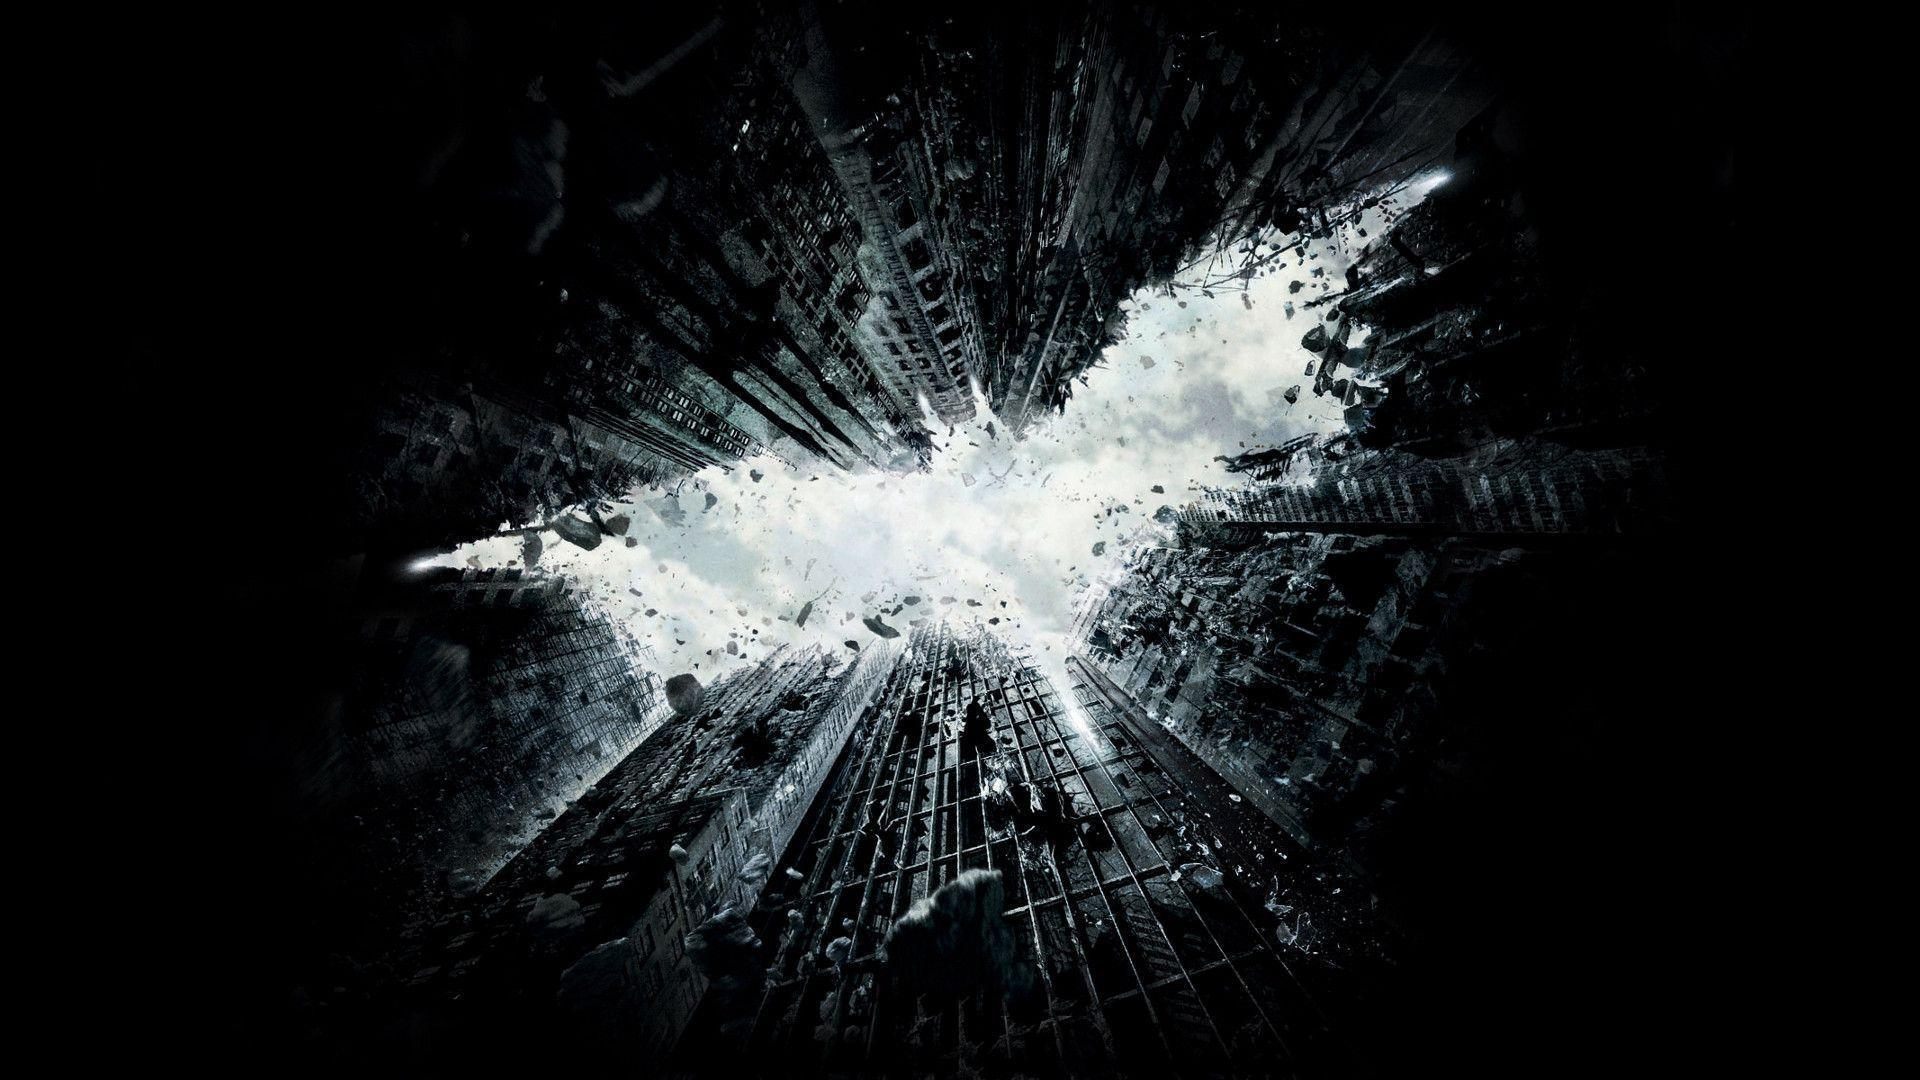 Free Download The Dark Knight Rises Wallpapers Hd 1920x1080 1920x1080 For Your Desktop Mobile Tablet Explore 69 The Dark Knight Wallpaper Hd The Dark Knight Returns Wallpaper The Dark